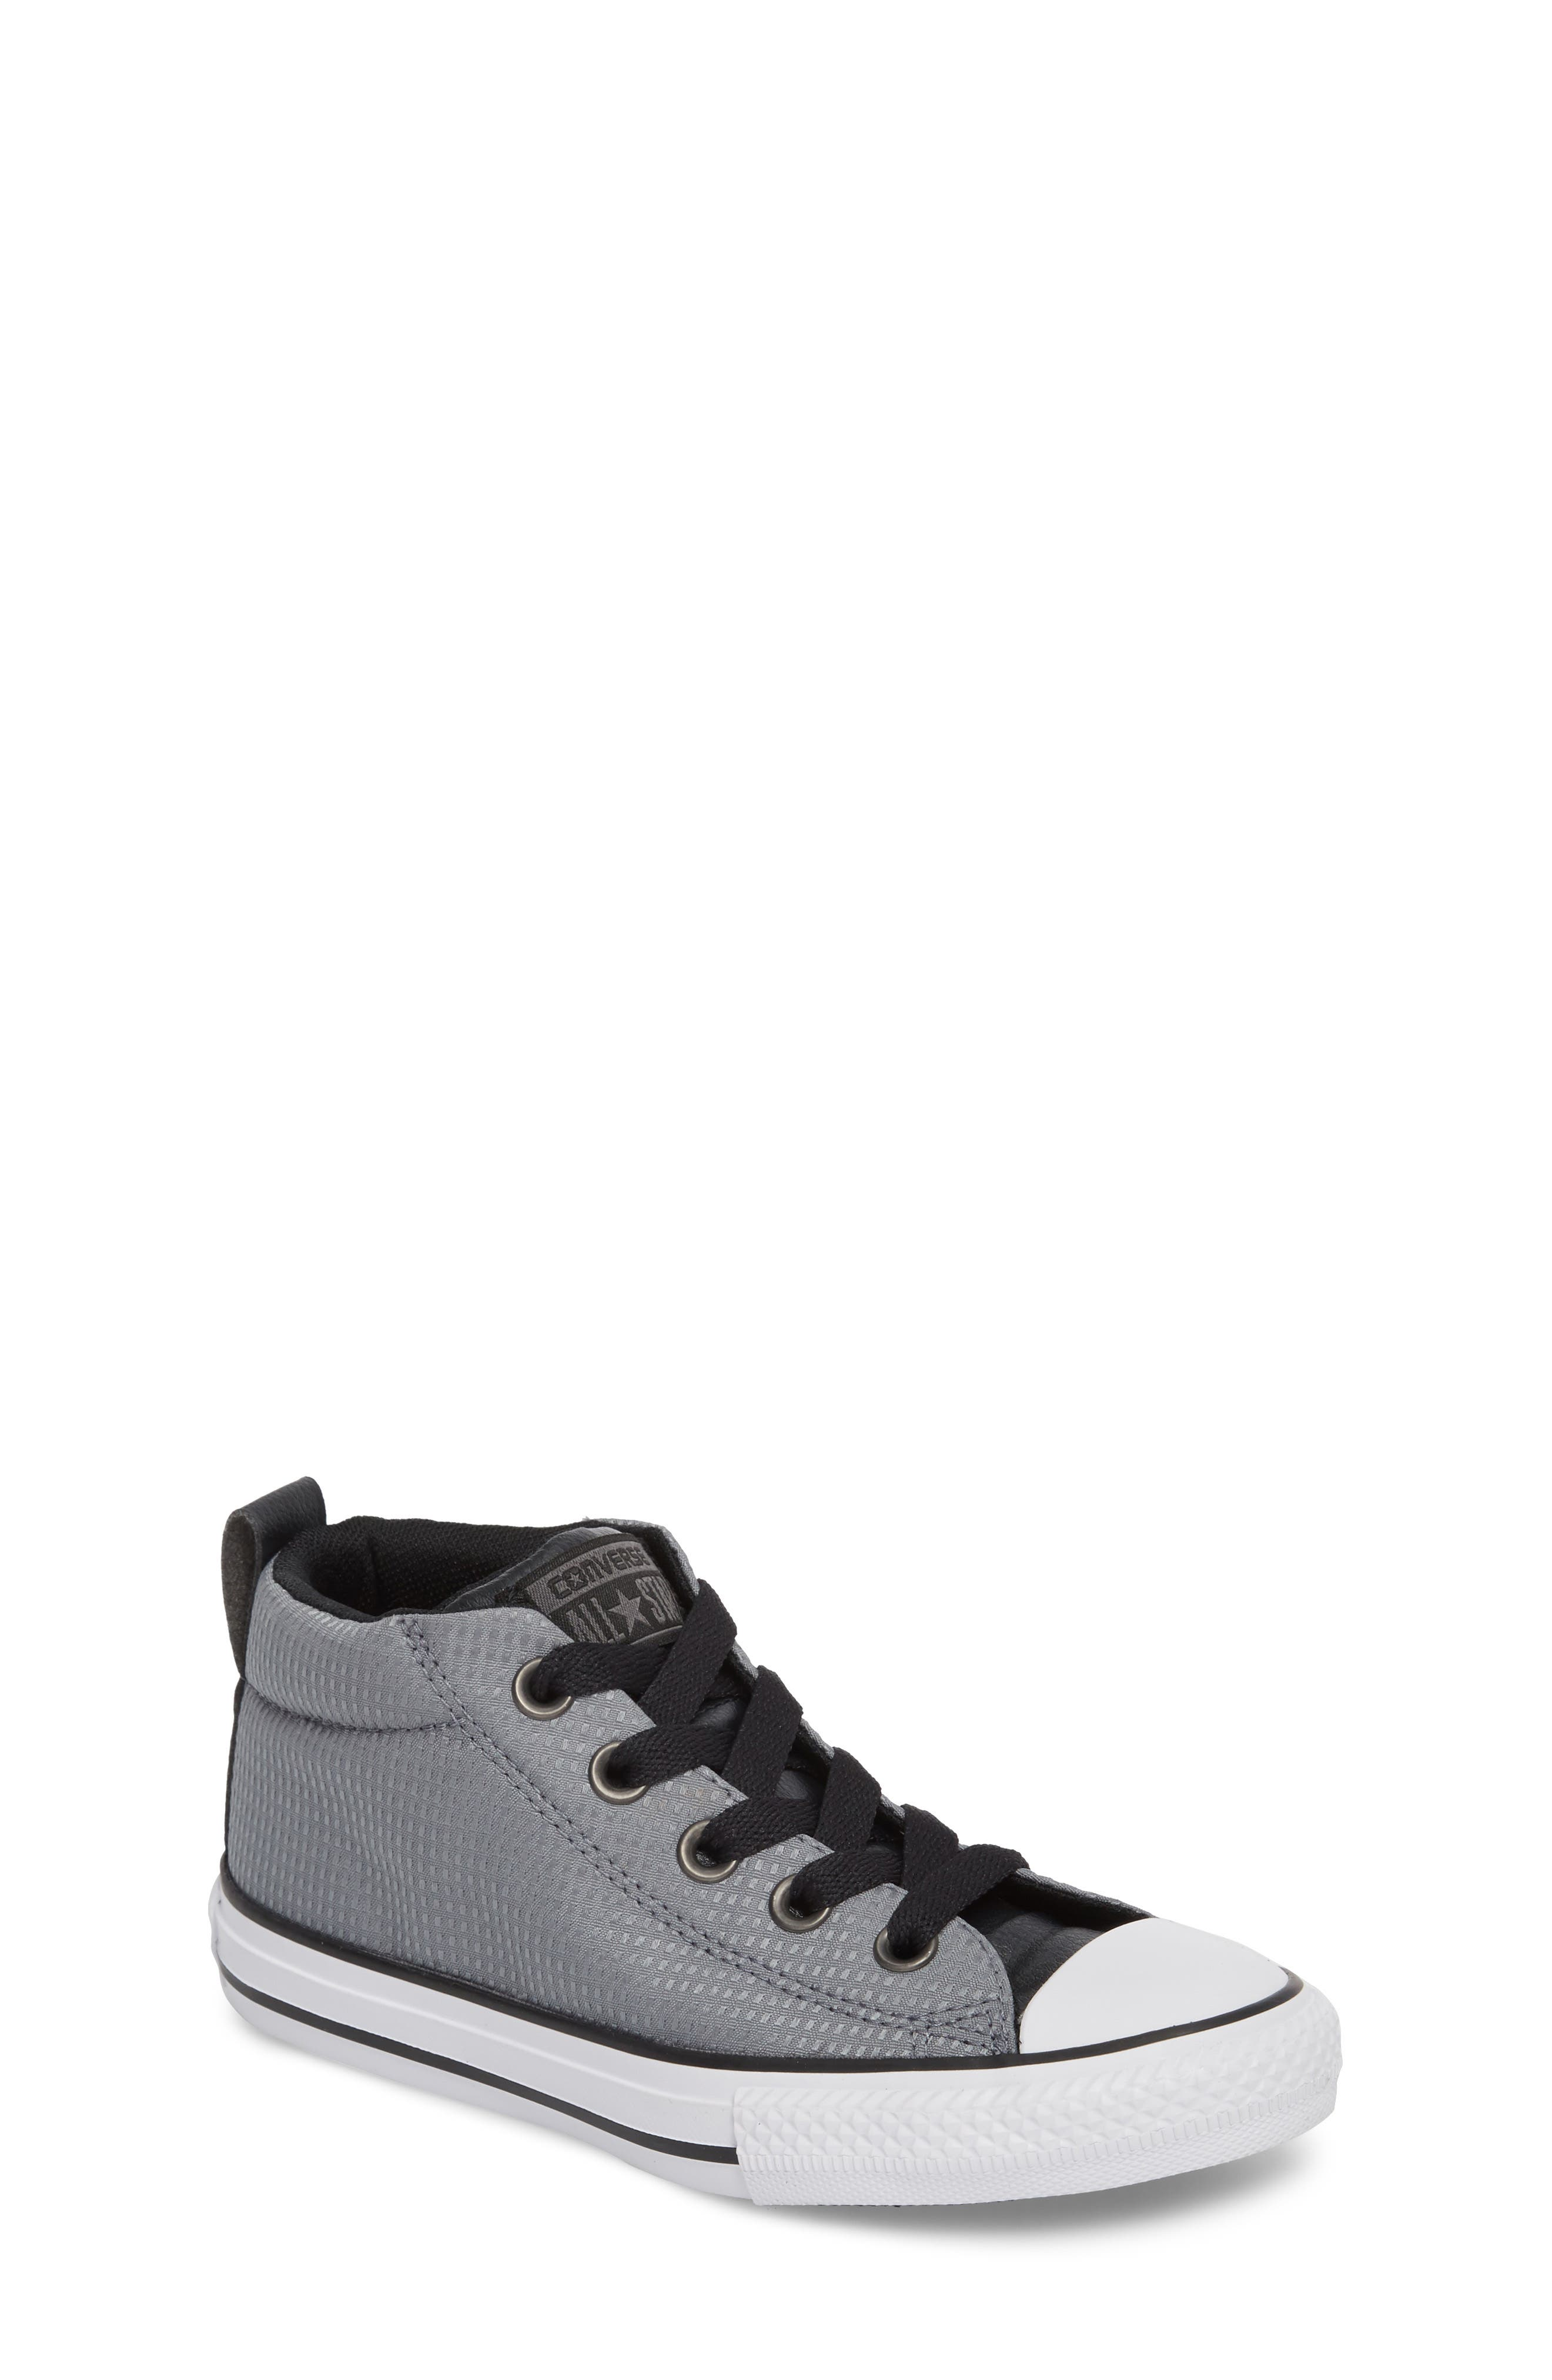 Chuck Taylor<sup>®</sup> All Star<sup>®</sup> Street Mid Backpack Sneaker,                         Main,                         color, Cool Grey